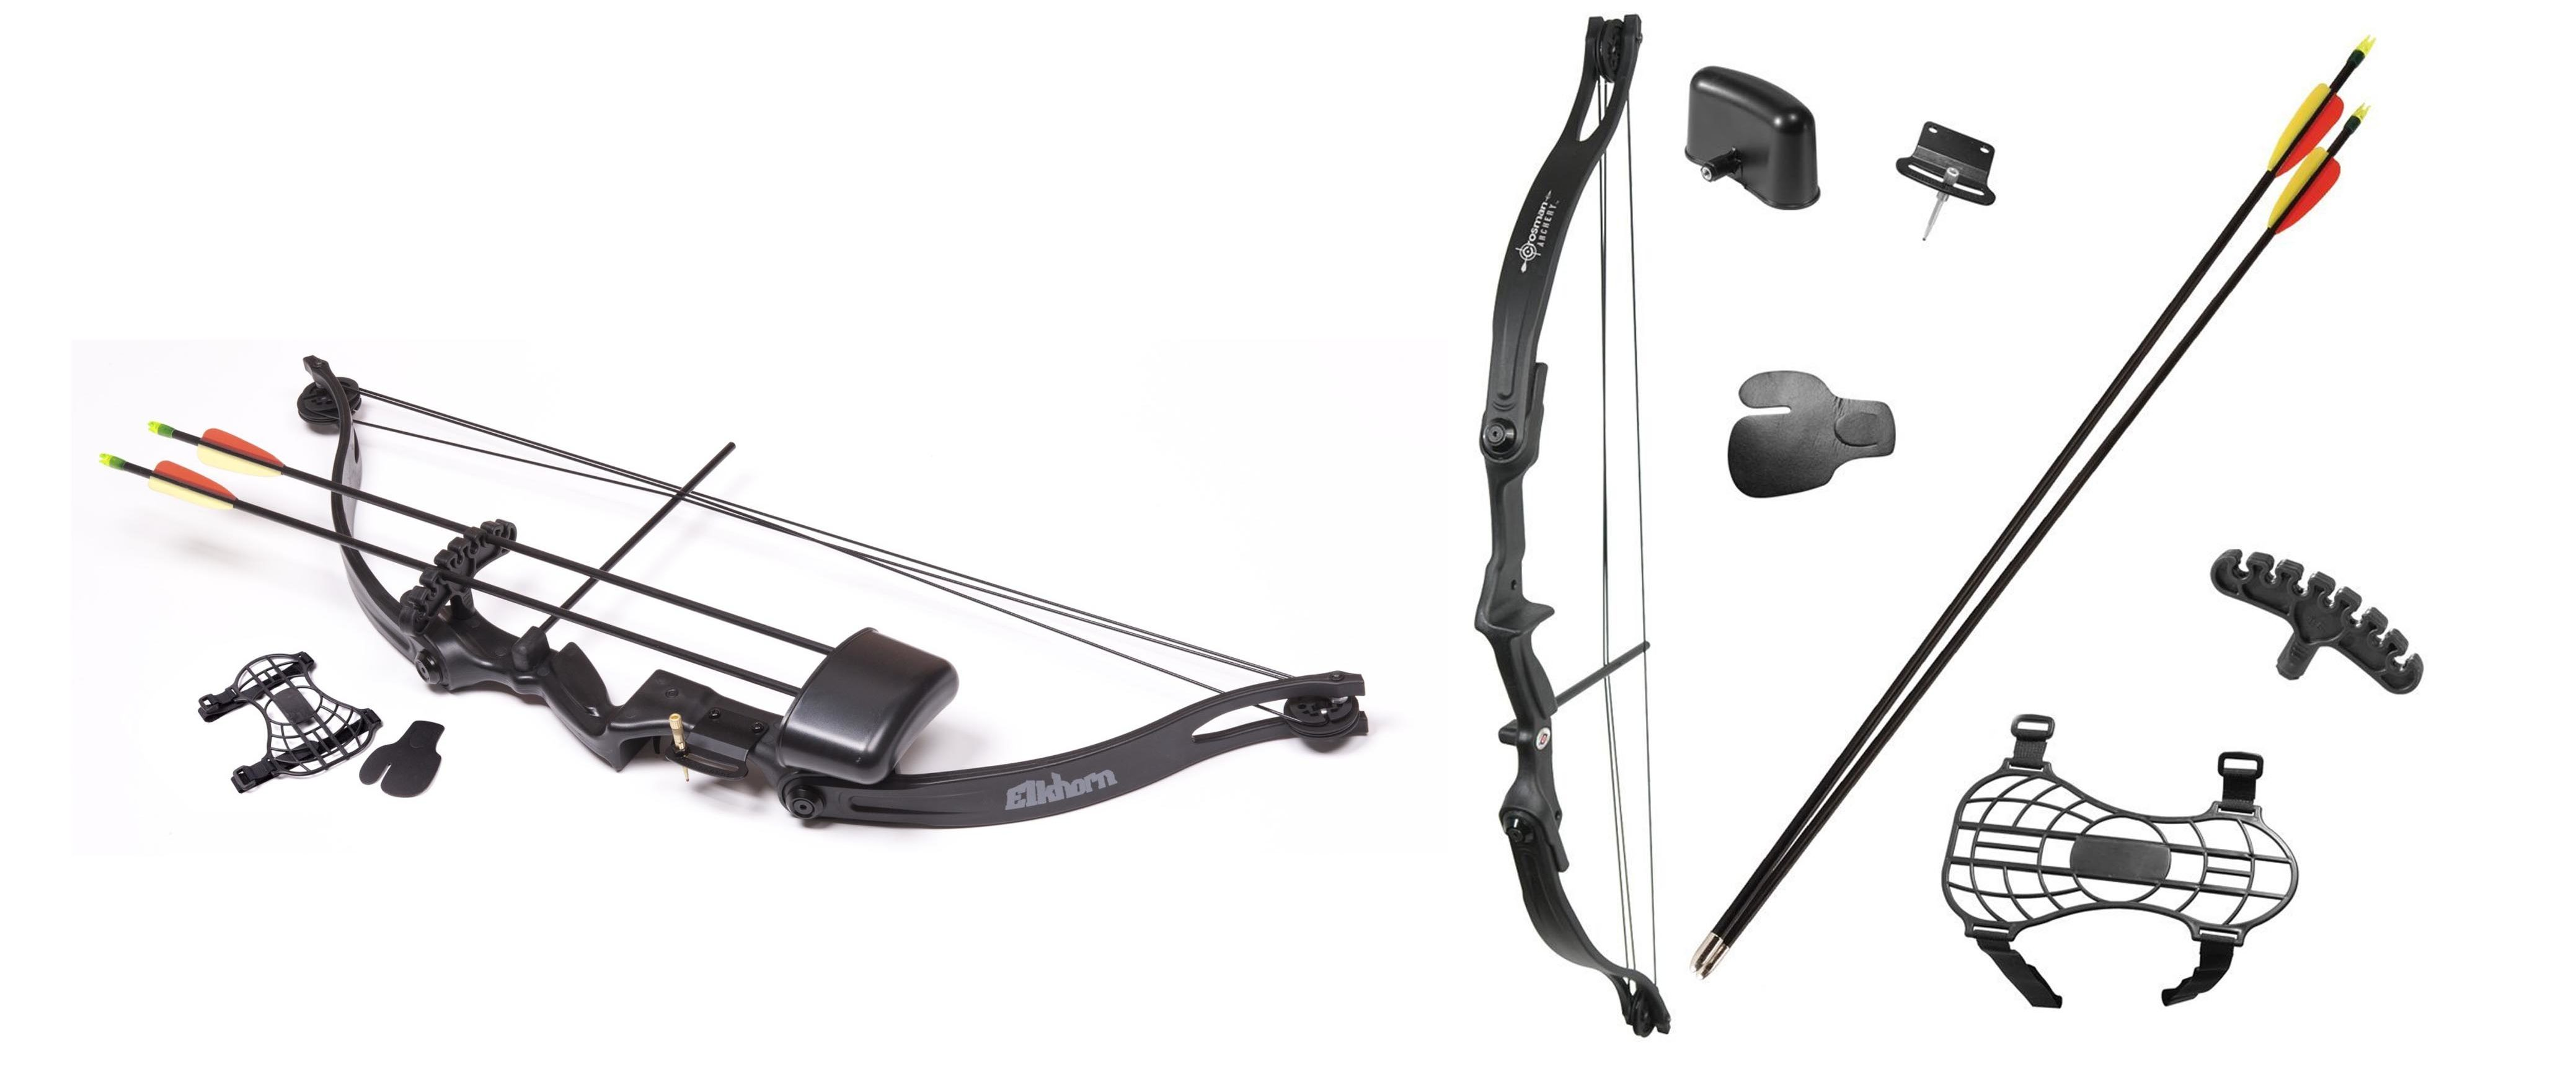 Crossman Elkhorn Jr. Compound Bow